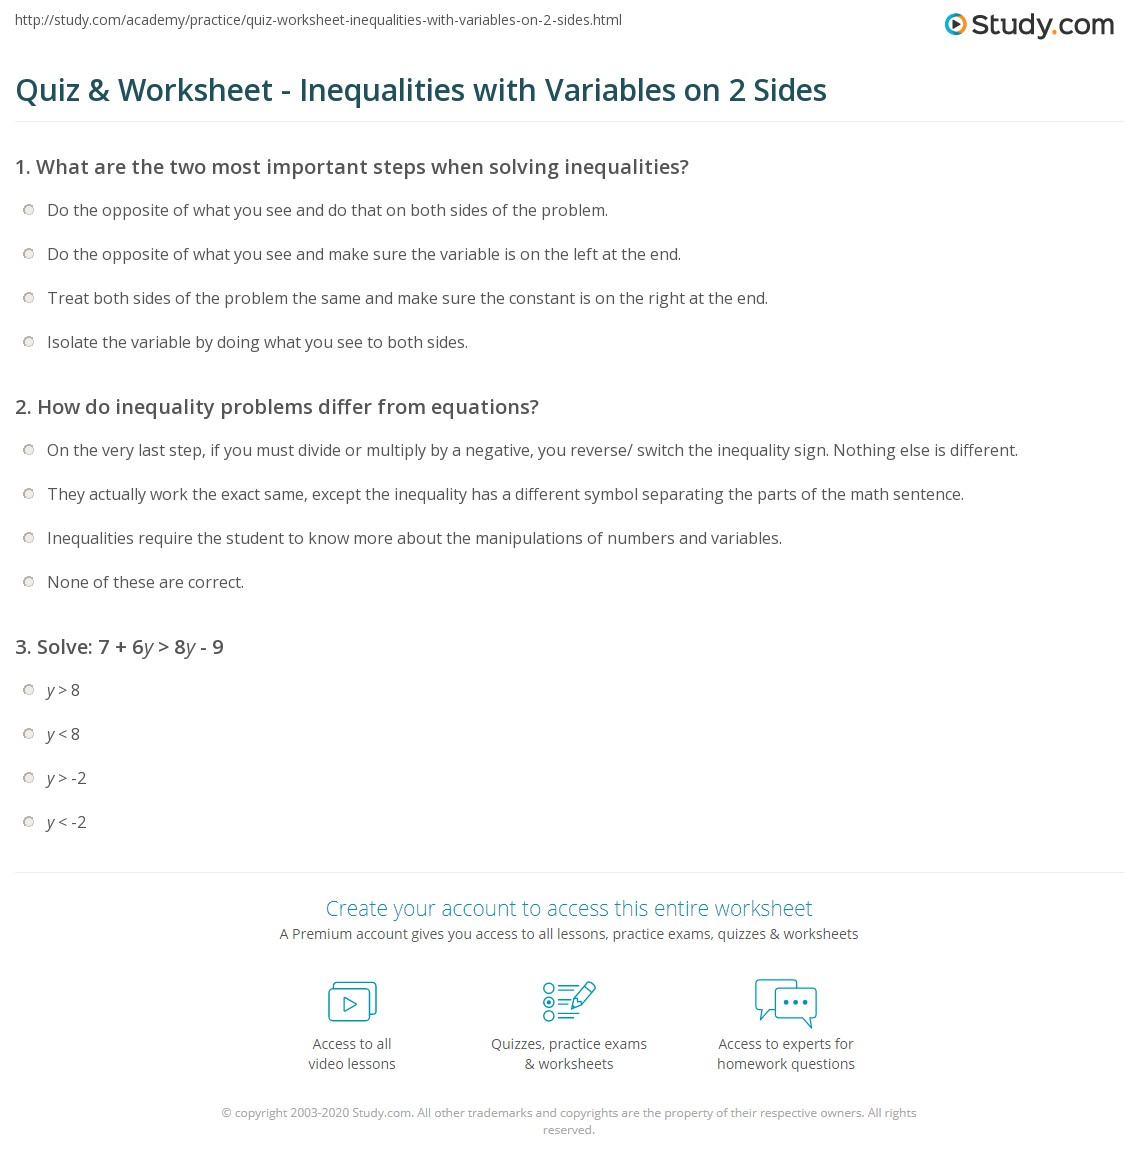 Quiz Worksheet Inequalities With Variables On 2 Sides Study